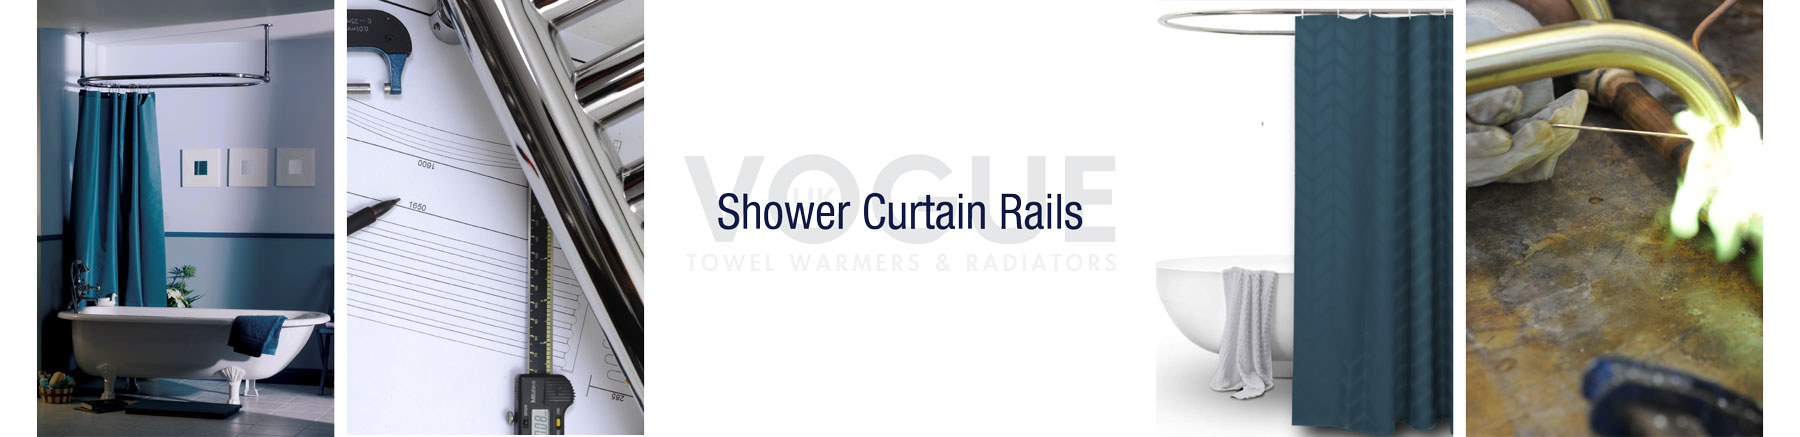 shower curtain rails product header